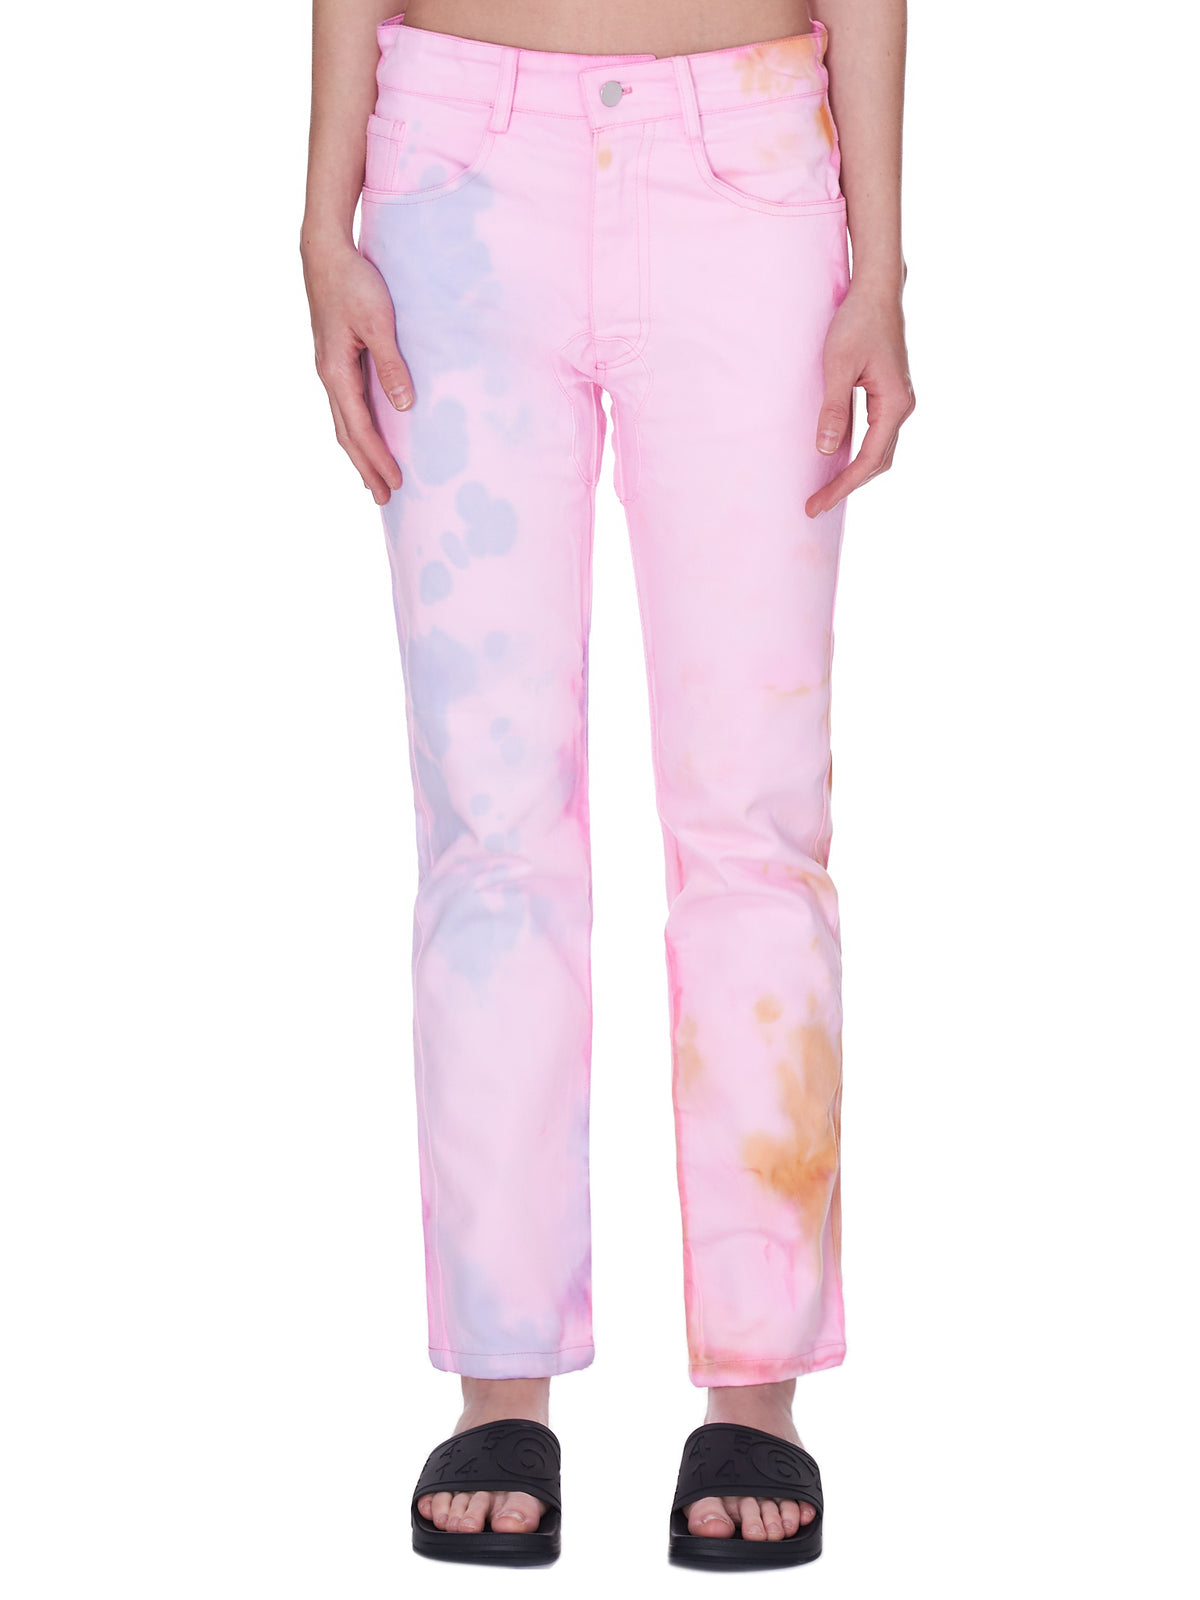 Flower Power Jean (XX6377-DREAM-HOUSE-PINK)